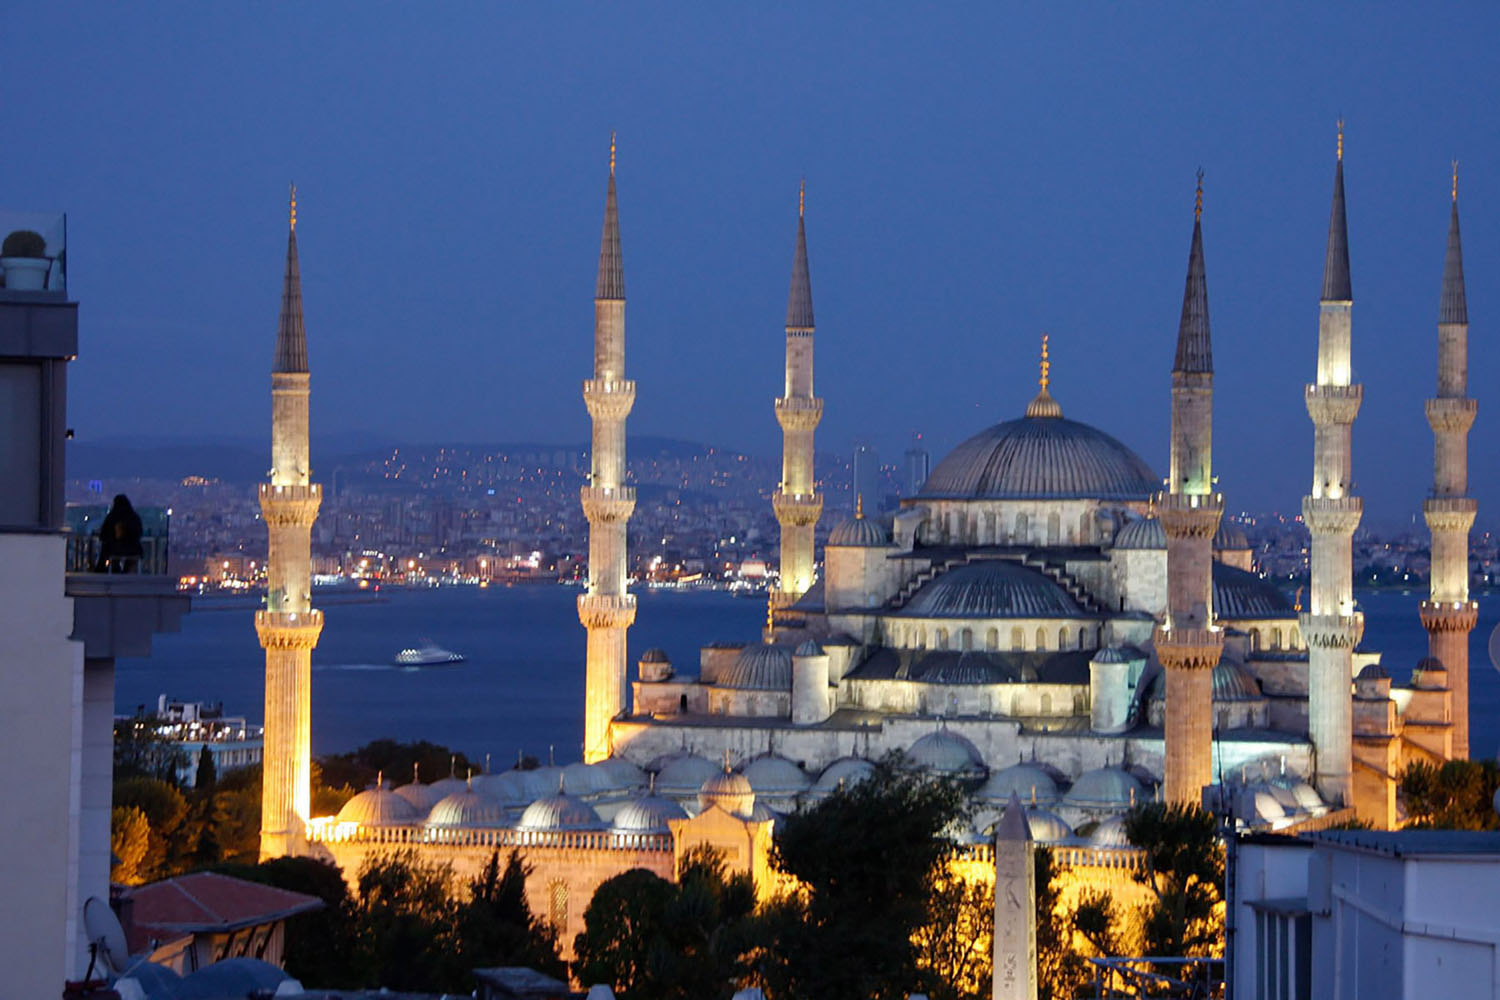 Blue Mosque in Istanbul at night, via Azamara Club Cruises